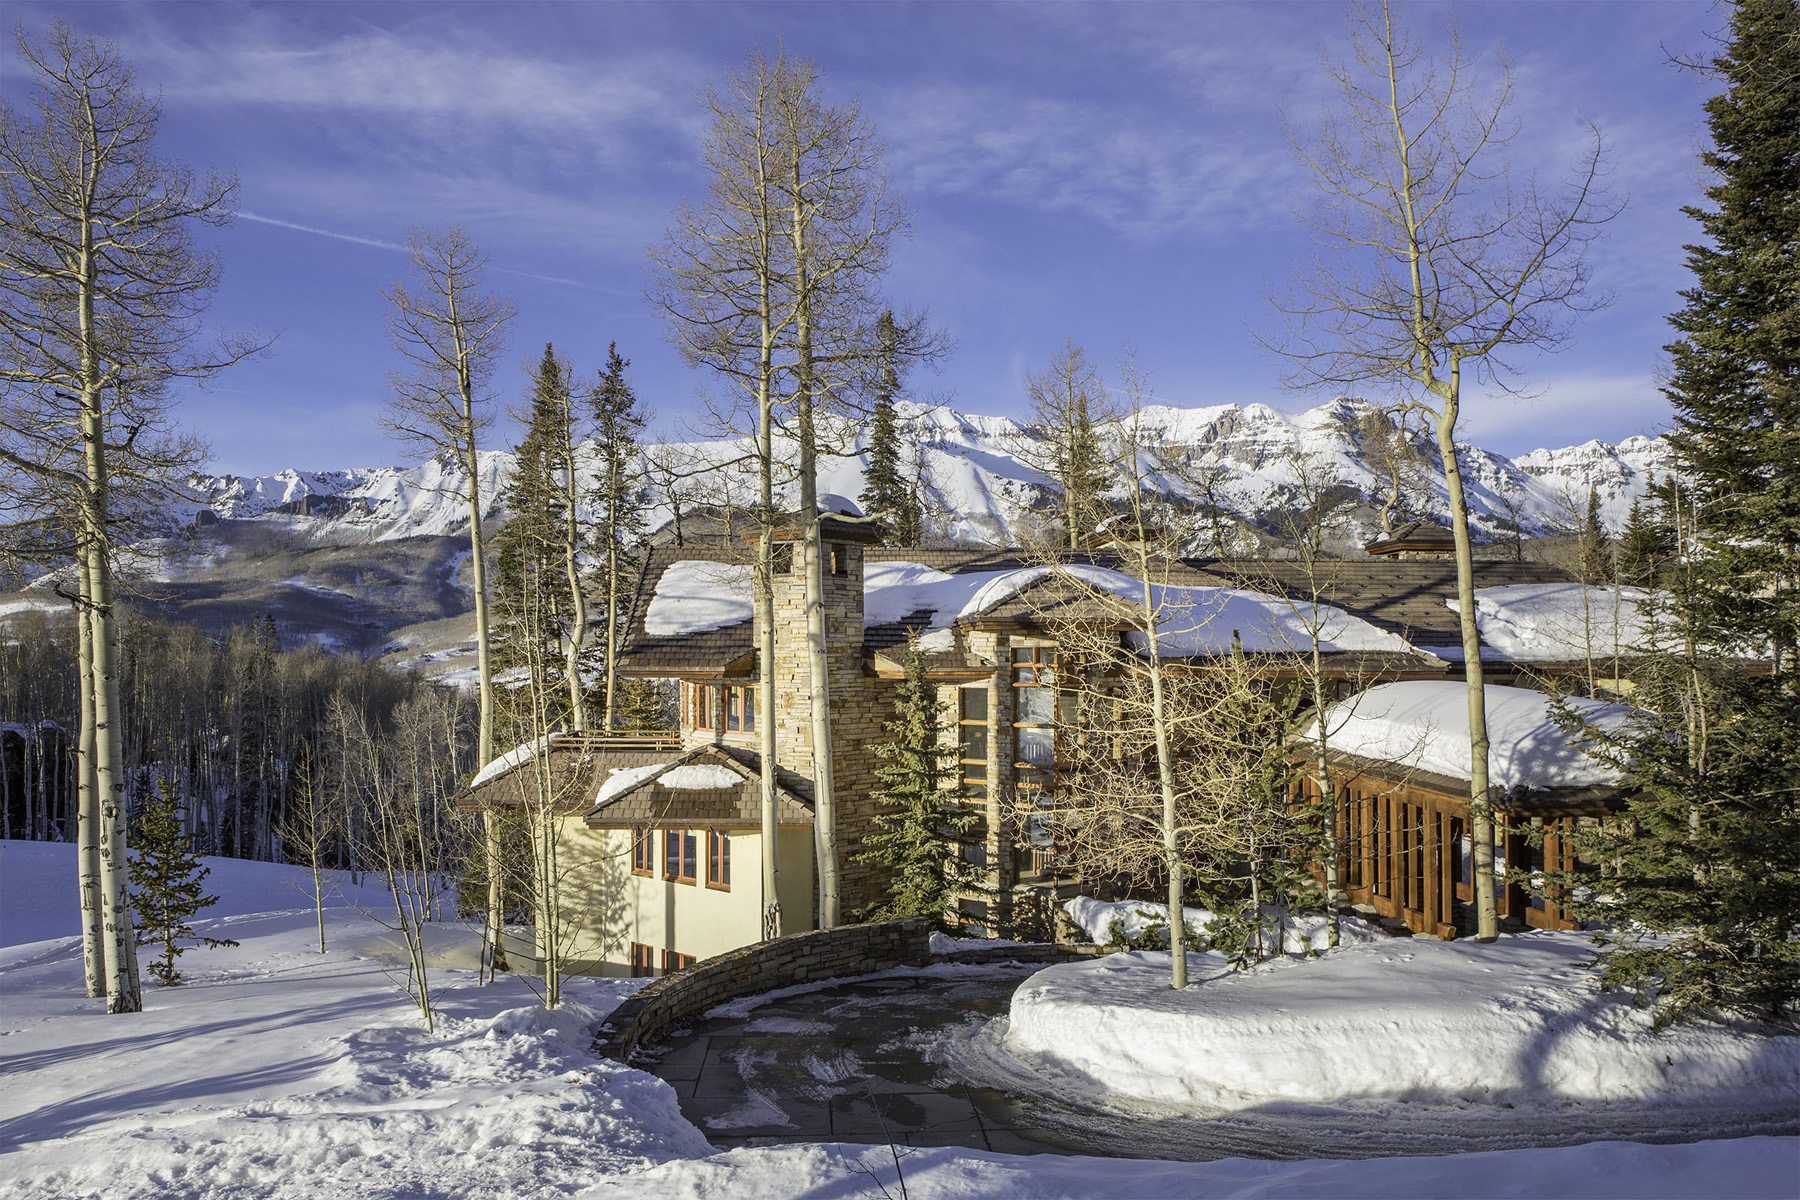 Single Family Home for Sale at Halcyon West Telluride, Colorado 81435 United States